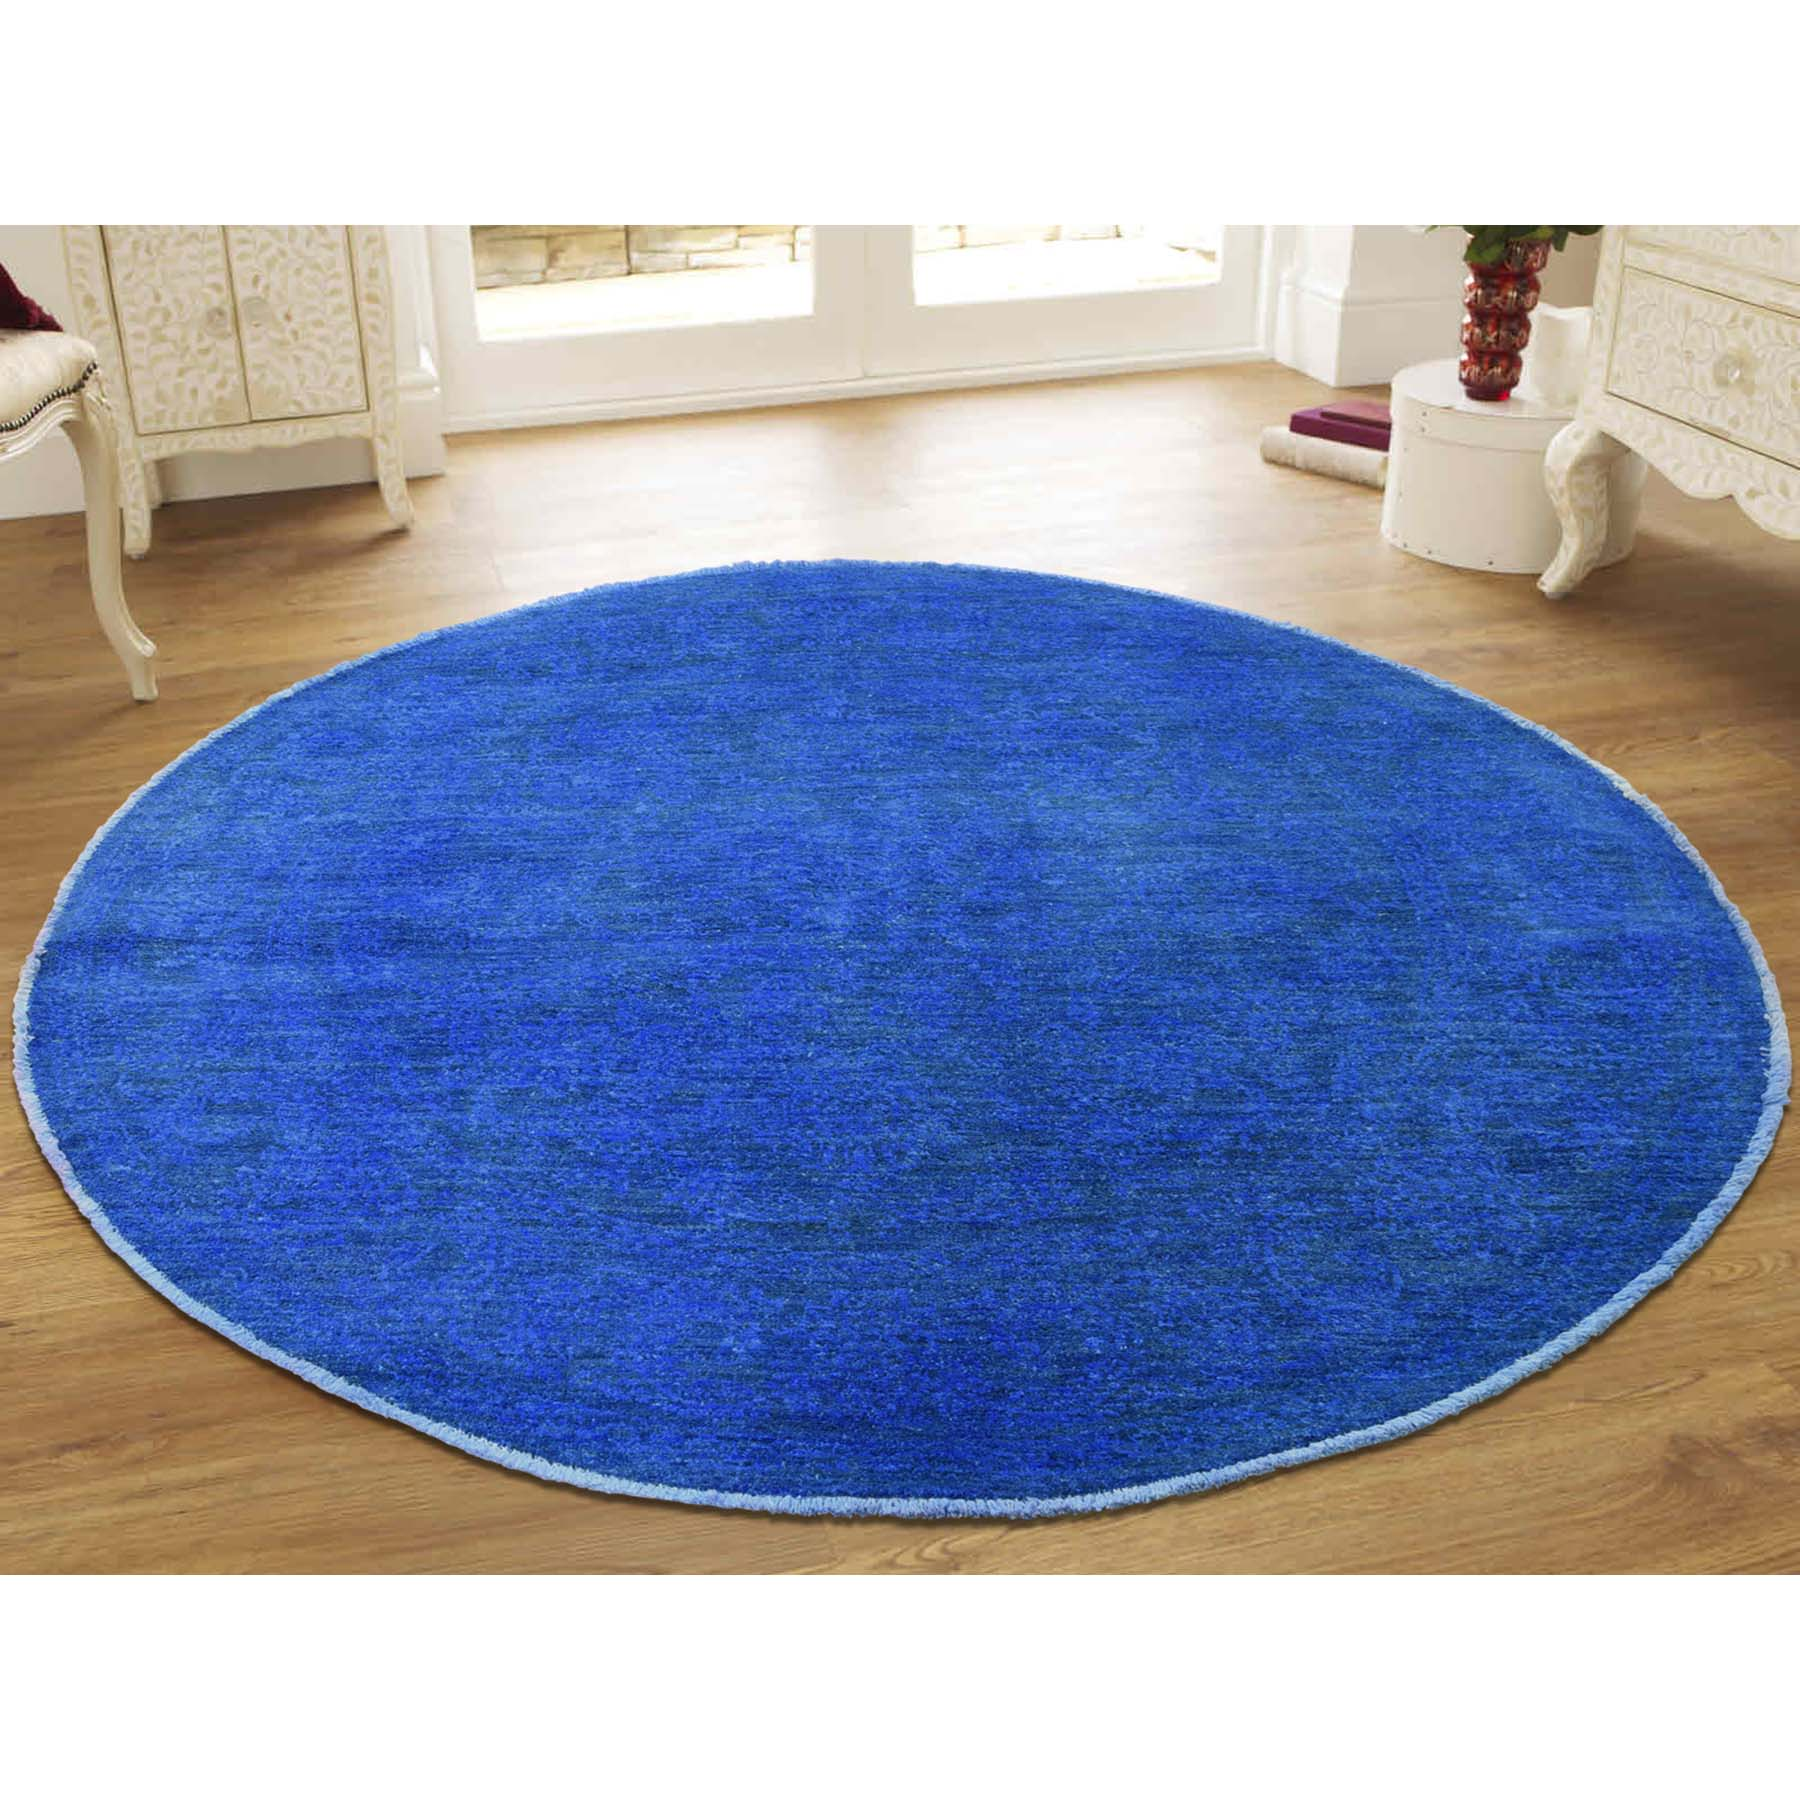 5-1 x5-3  Overdyed Chobi Not Worn Hand-Knotted Round Oriental Rug